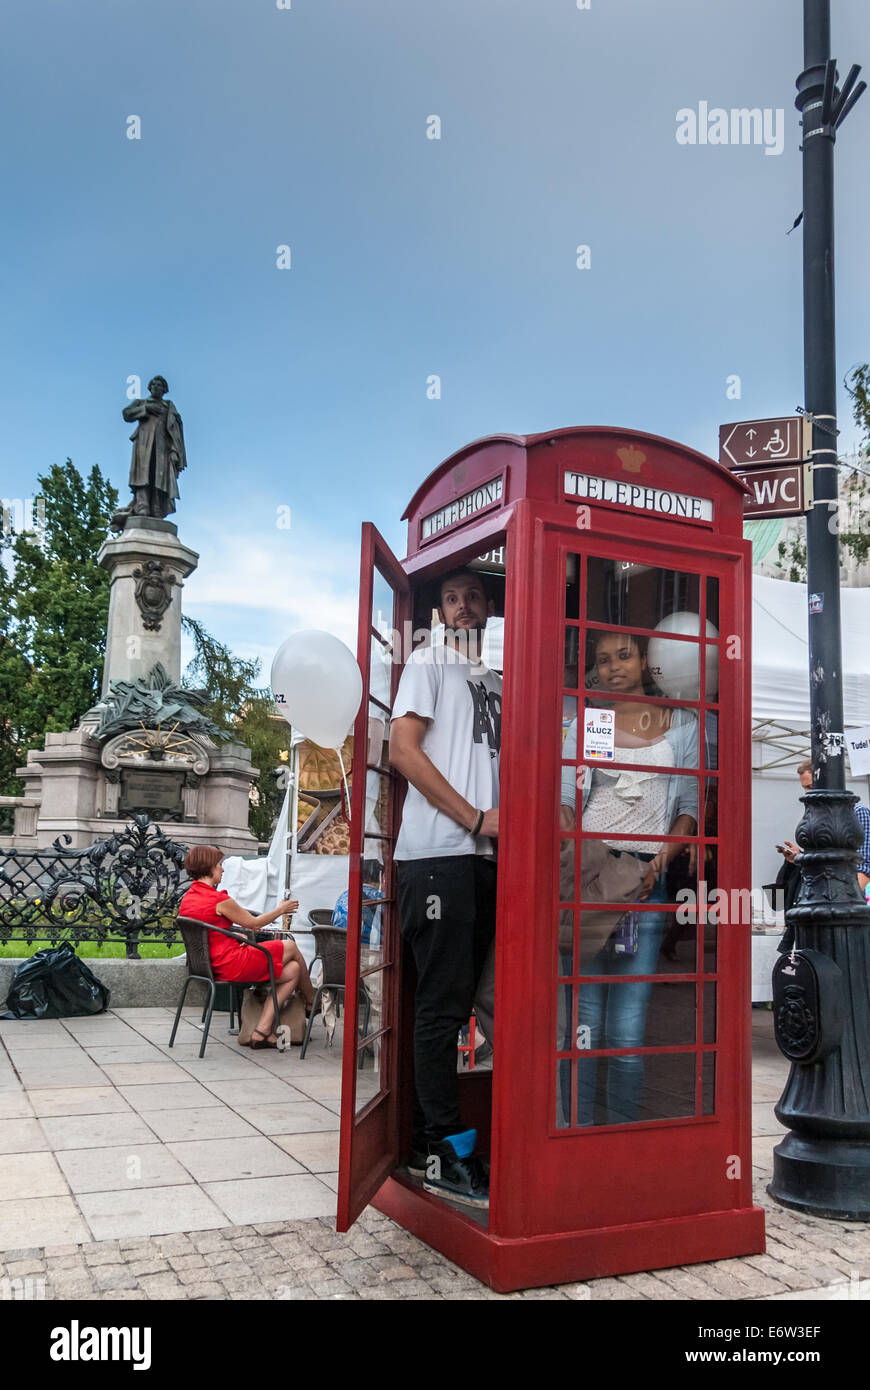 BT Red Telephone Box and Monument to Adam Mickiewicz, Warsaw, Poland - Stock Image